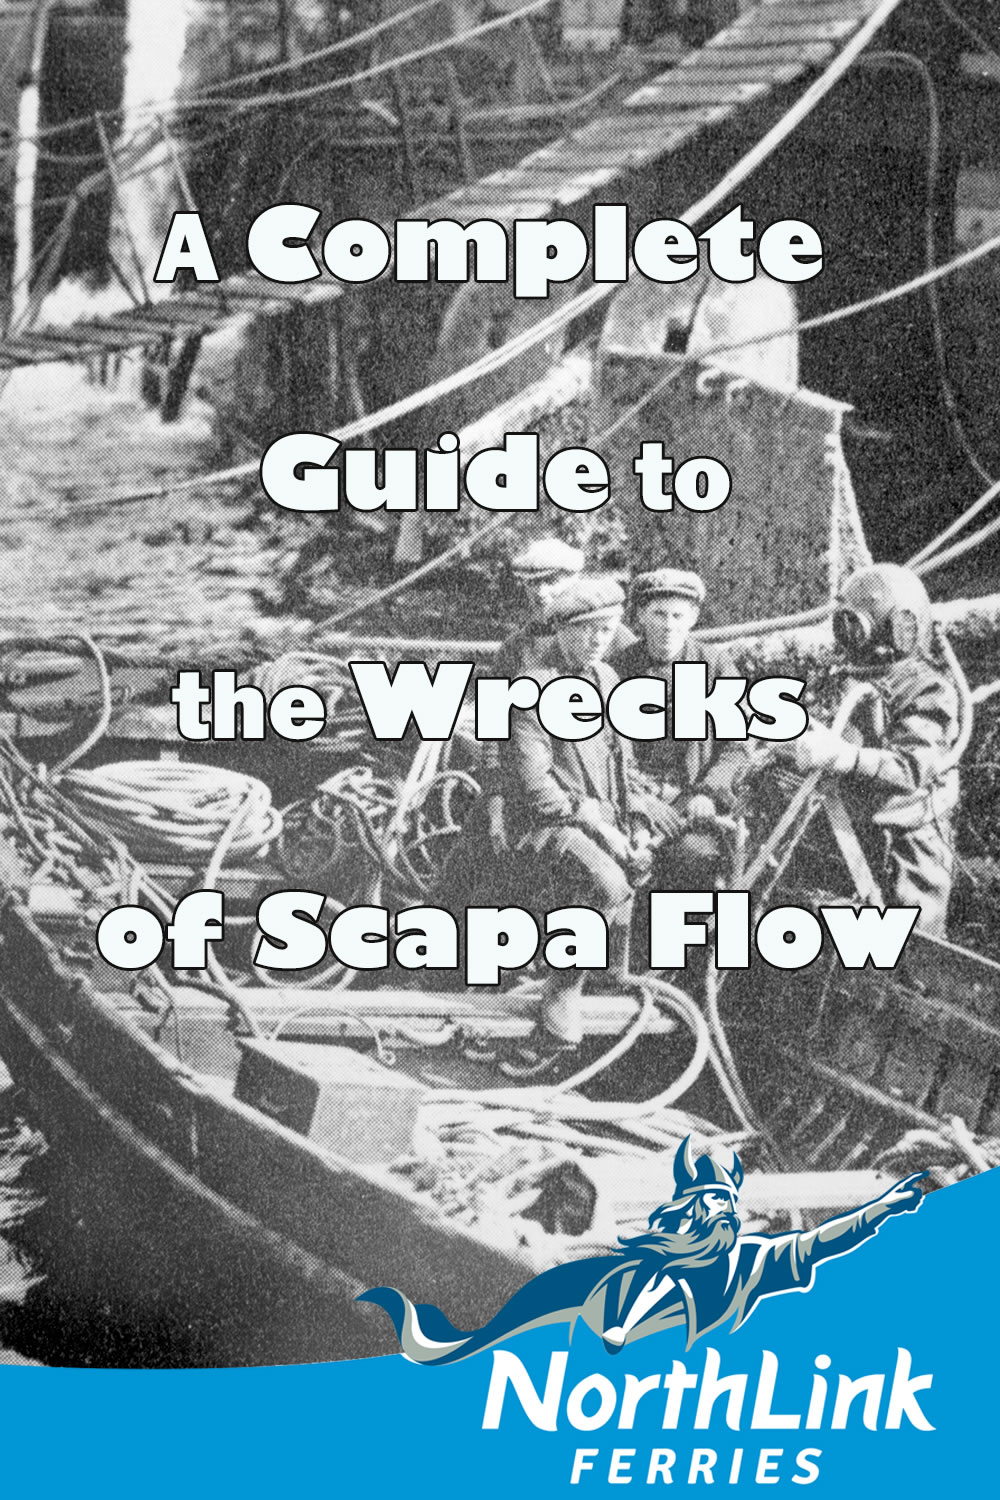 A Complete Guide to the Wrecks of Scapa Flow